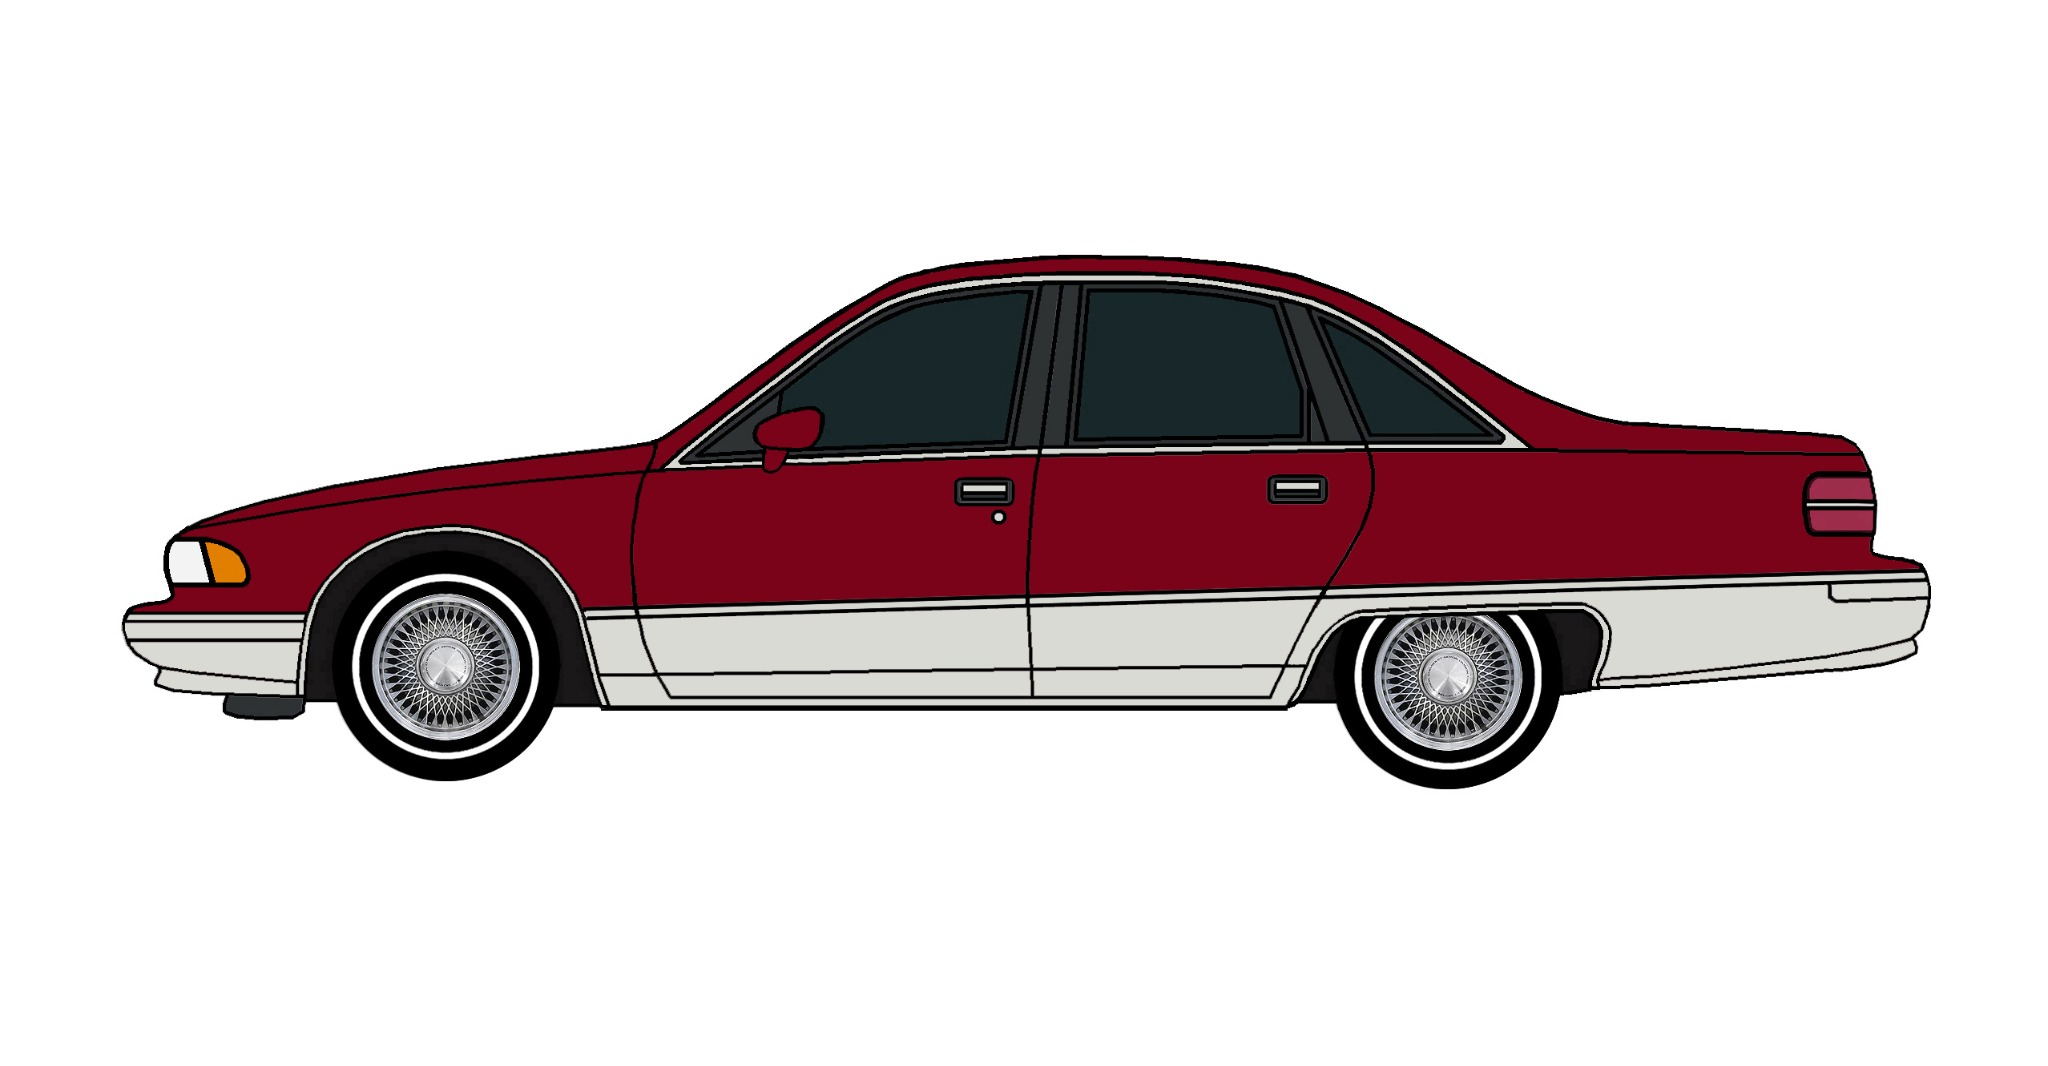 1991 Chevy Caprice DEEP BURGUNDY & GREY